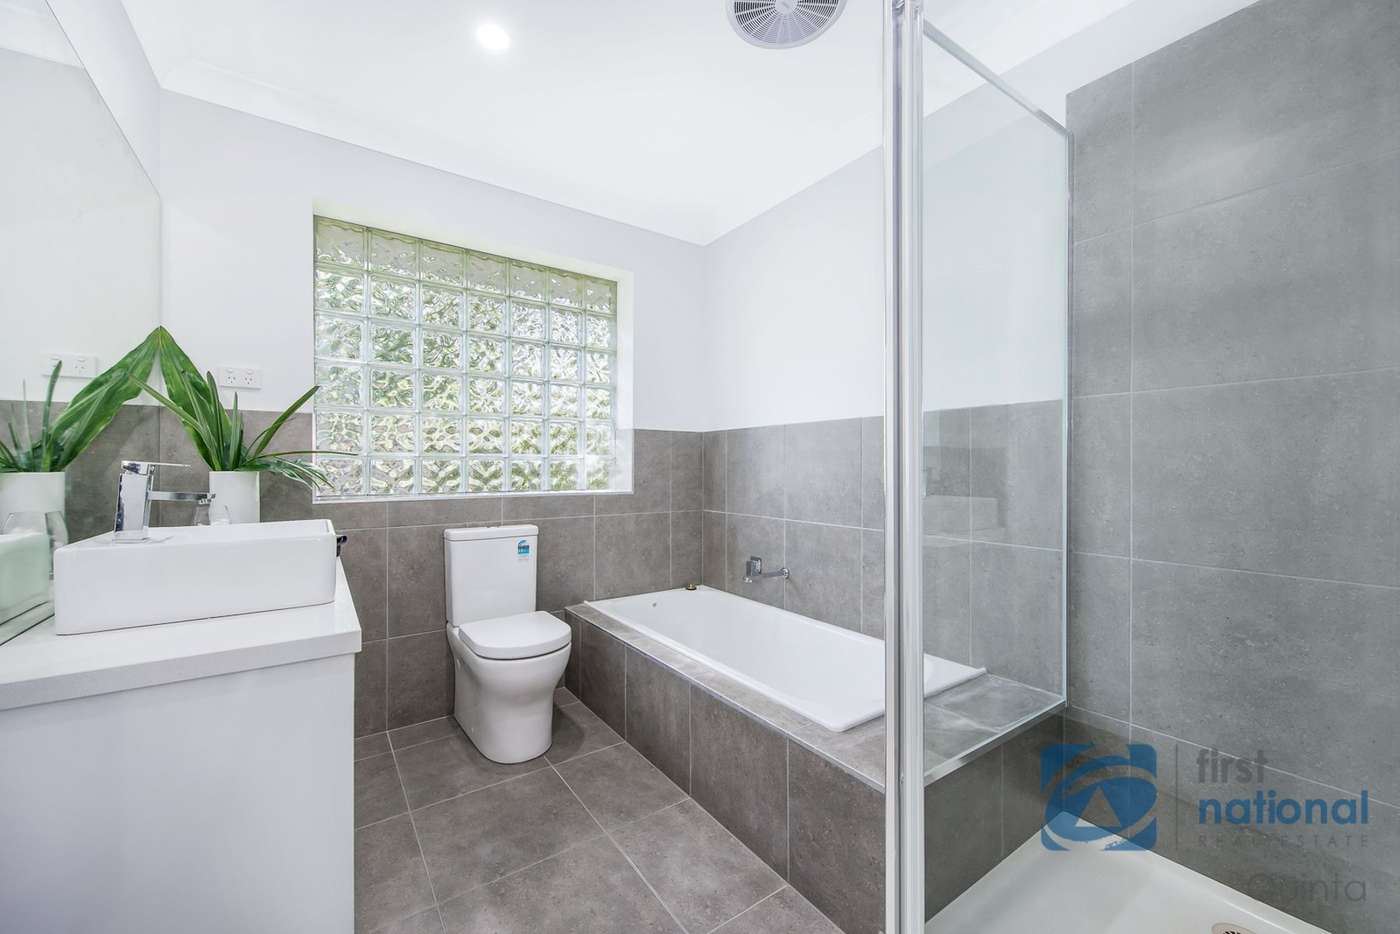 Main view of Homely unit listing, 1/2 Coonawarra Drive, Vermont South, VIC 3133